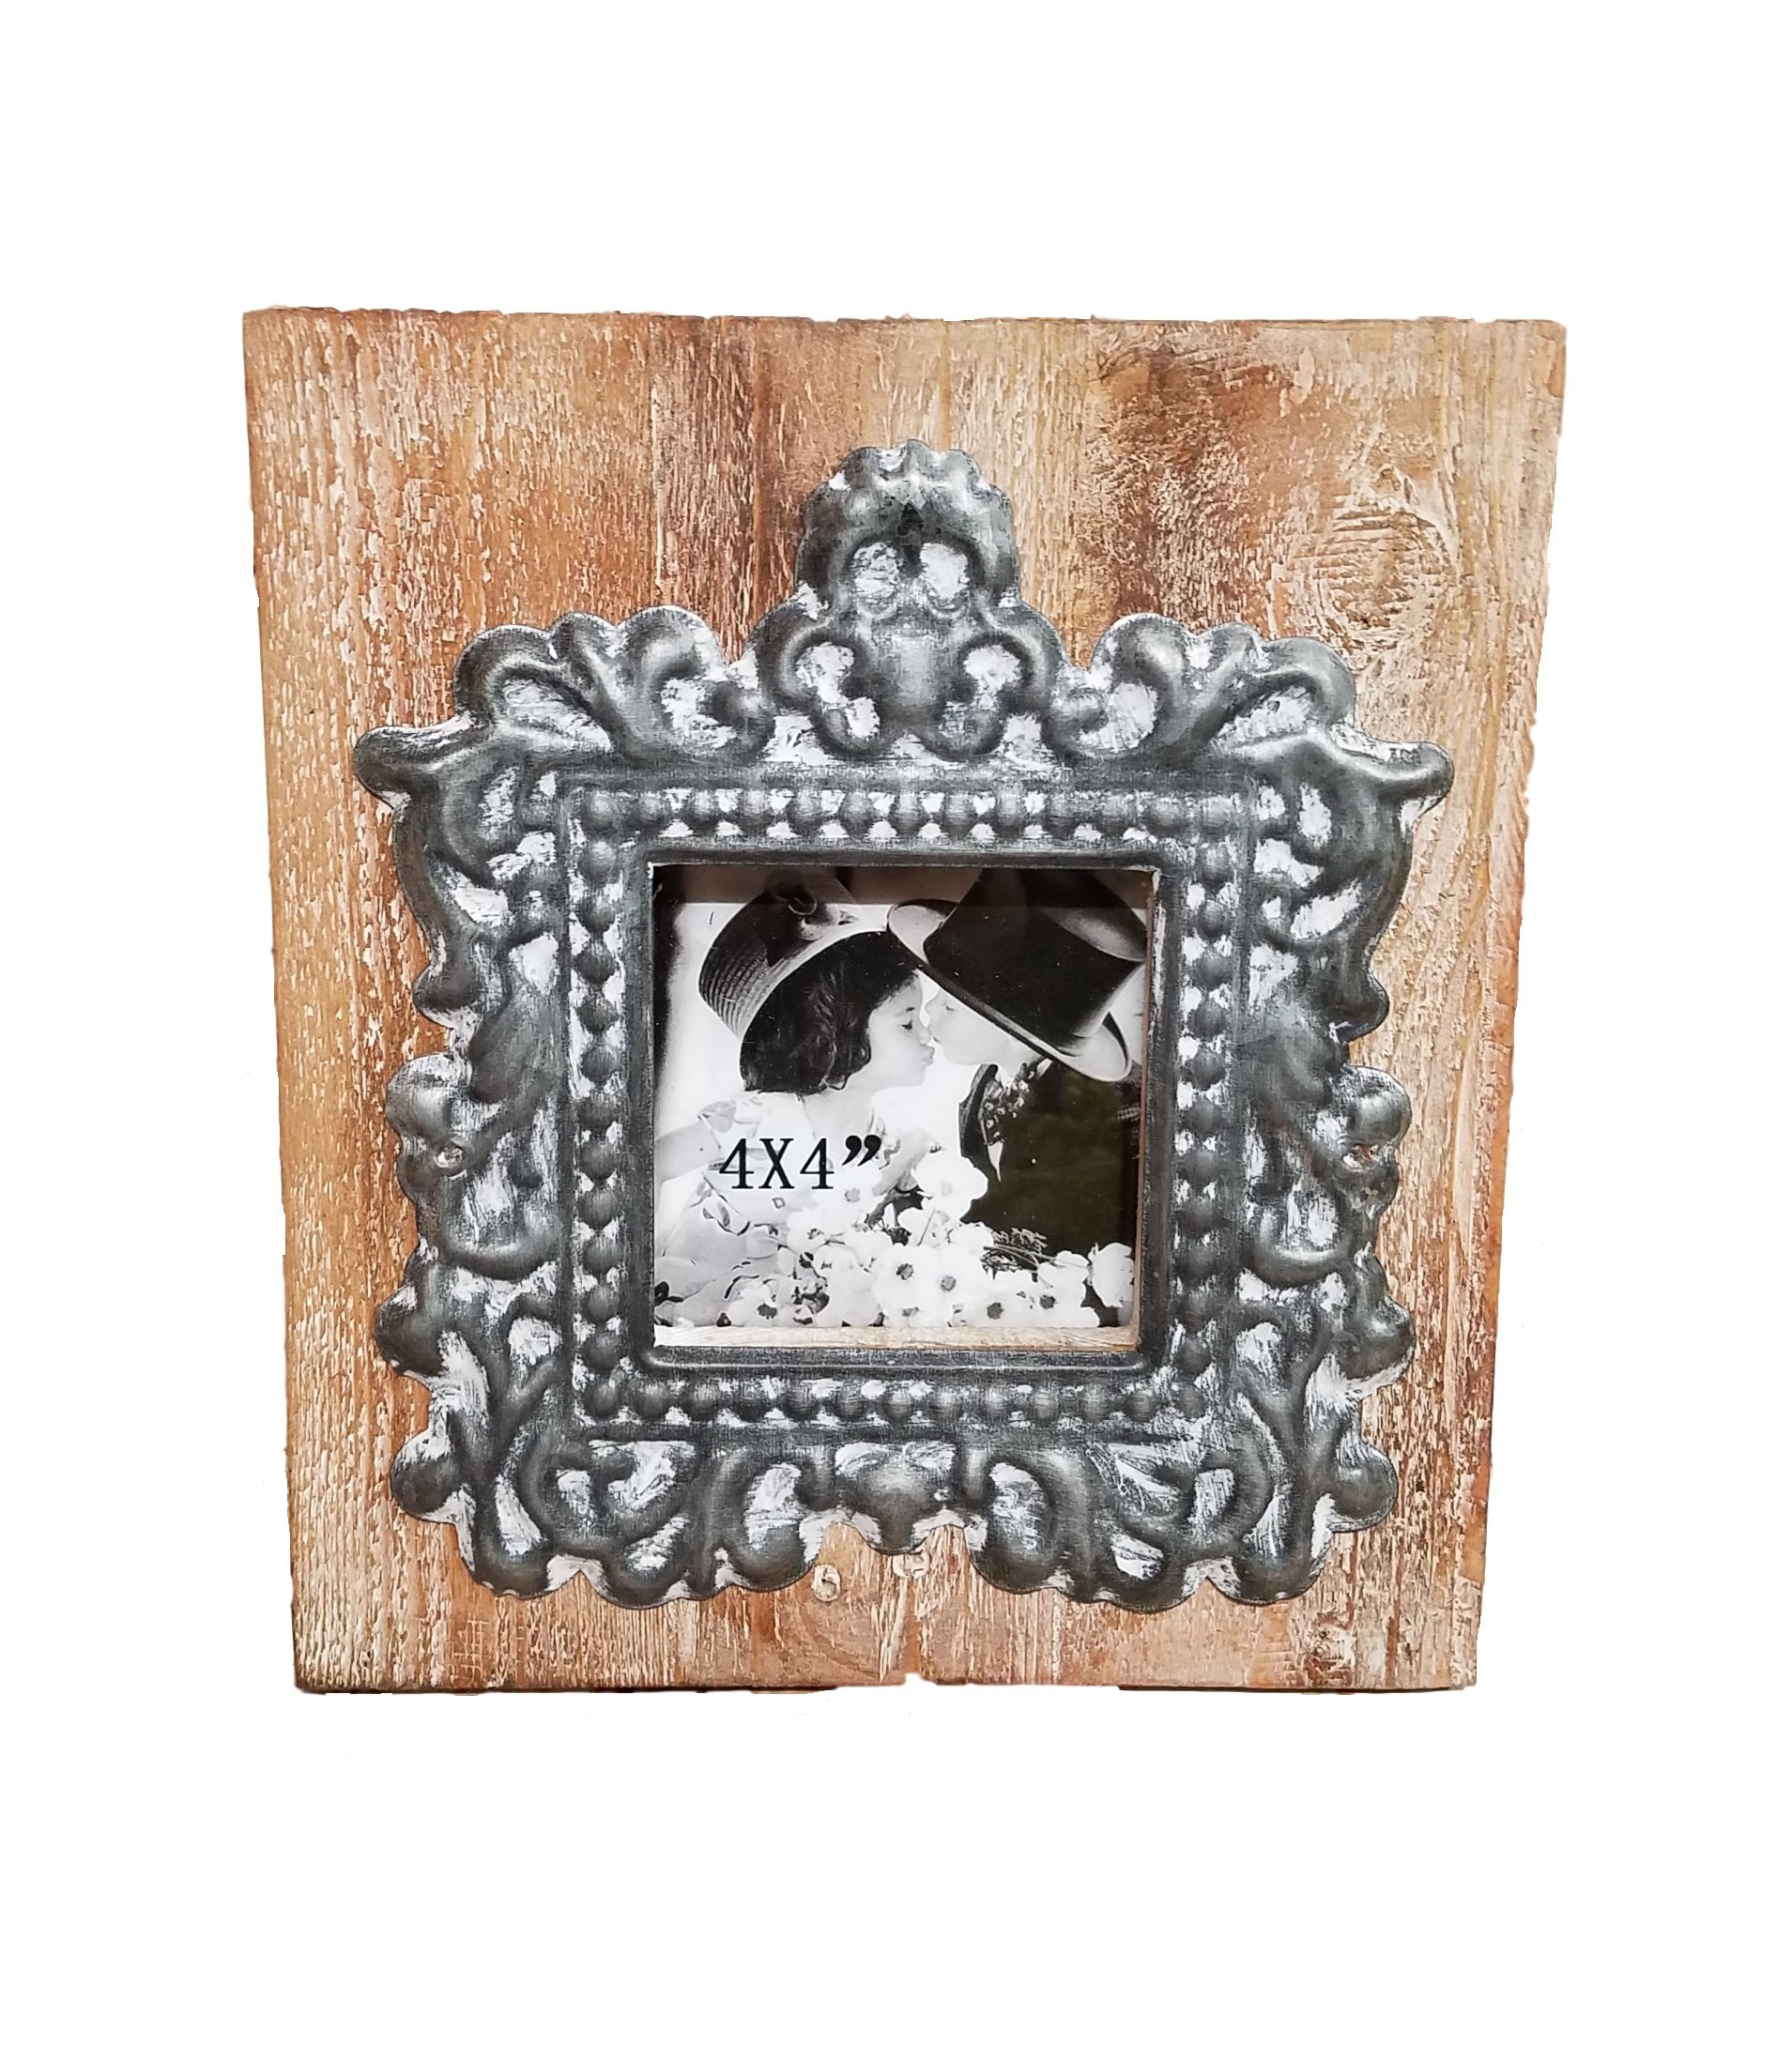 AT Vintage Wood and Metal Picture Frame Modern Farmhouse Decor by AT (Image #1)